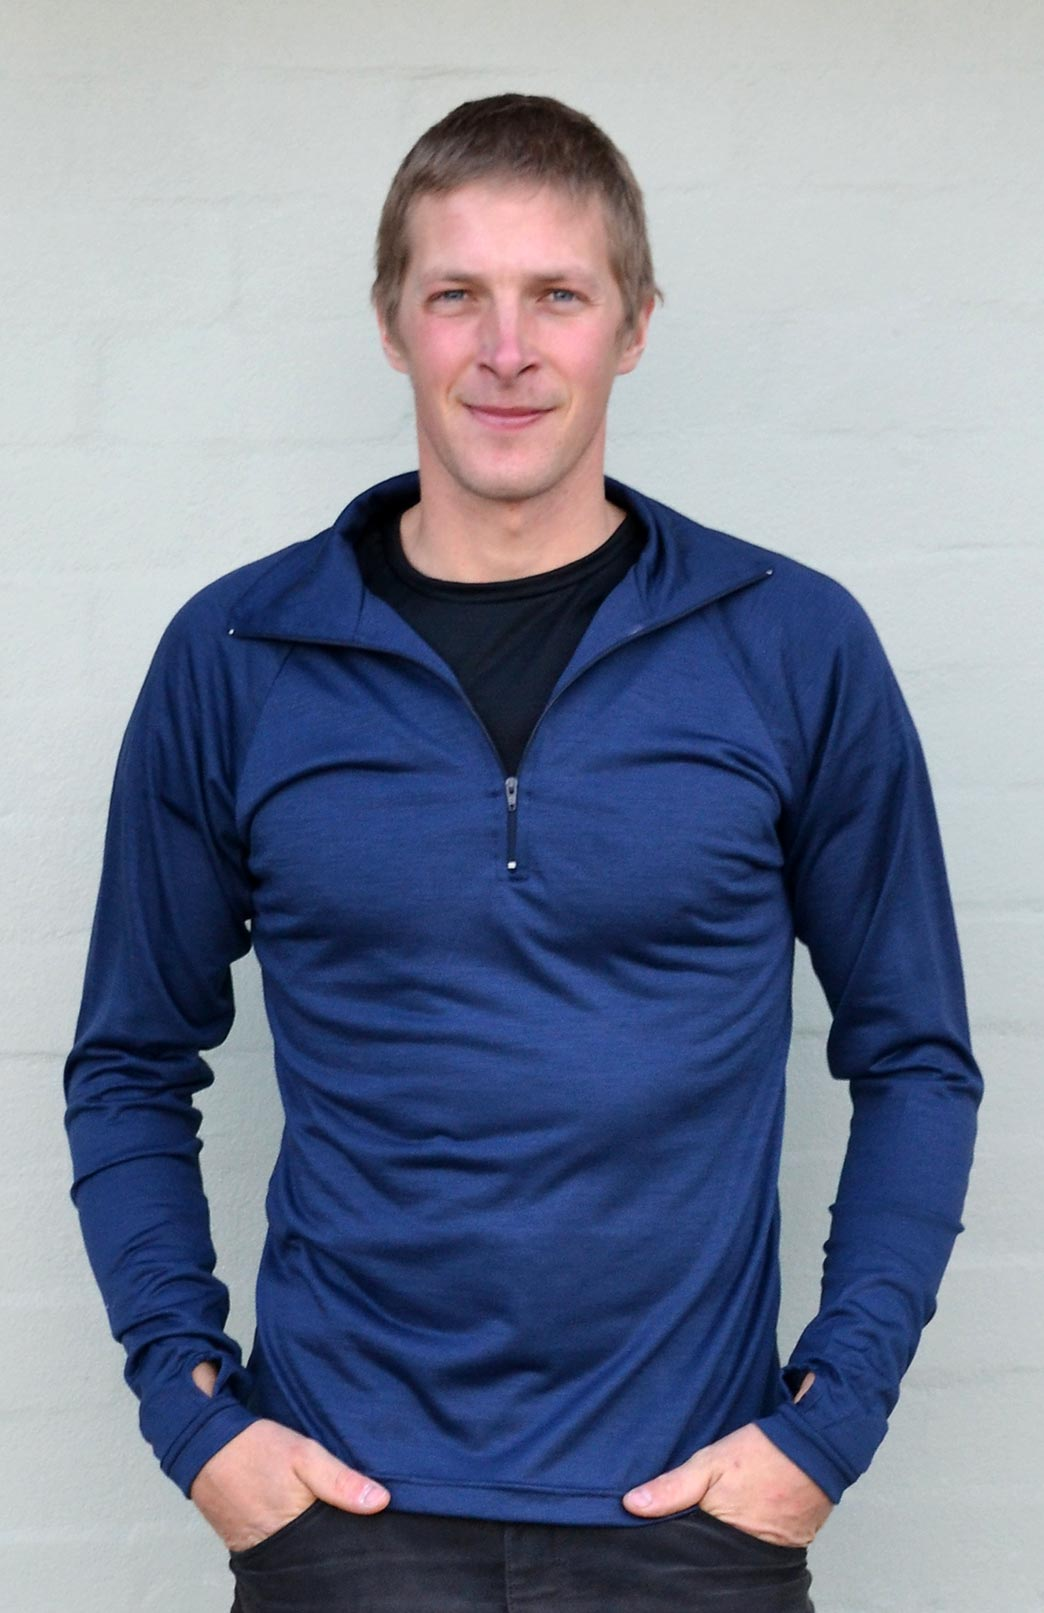 Zip Neck Top - Lightweight (~170g) - Men's Dark Indigo Blue Pure Merino Wool Zip Neck Pull Over Top with Thumb Holes - Smitten Merino Tasmania Australia